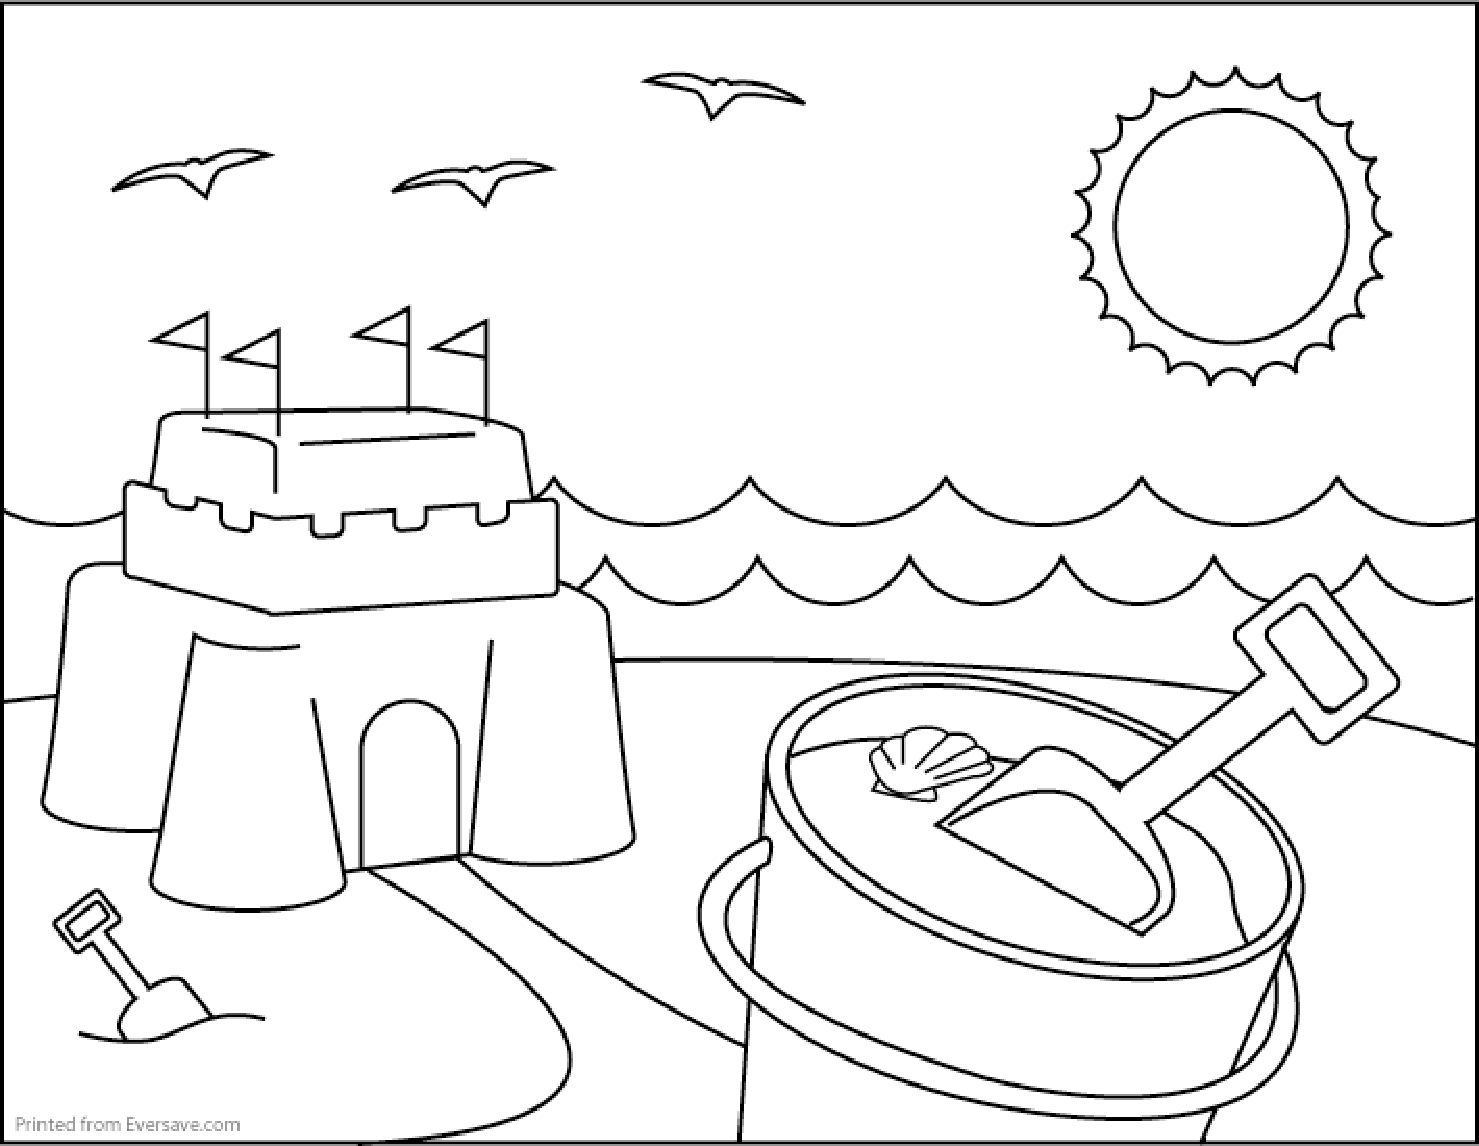 summer coloring pages for adults - Free Large Images | summer ...